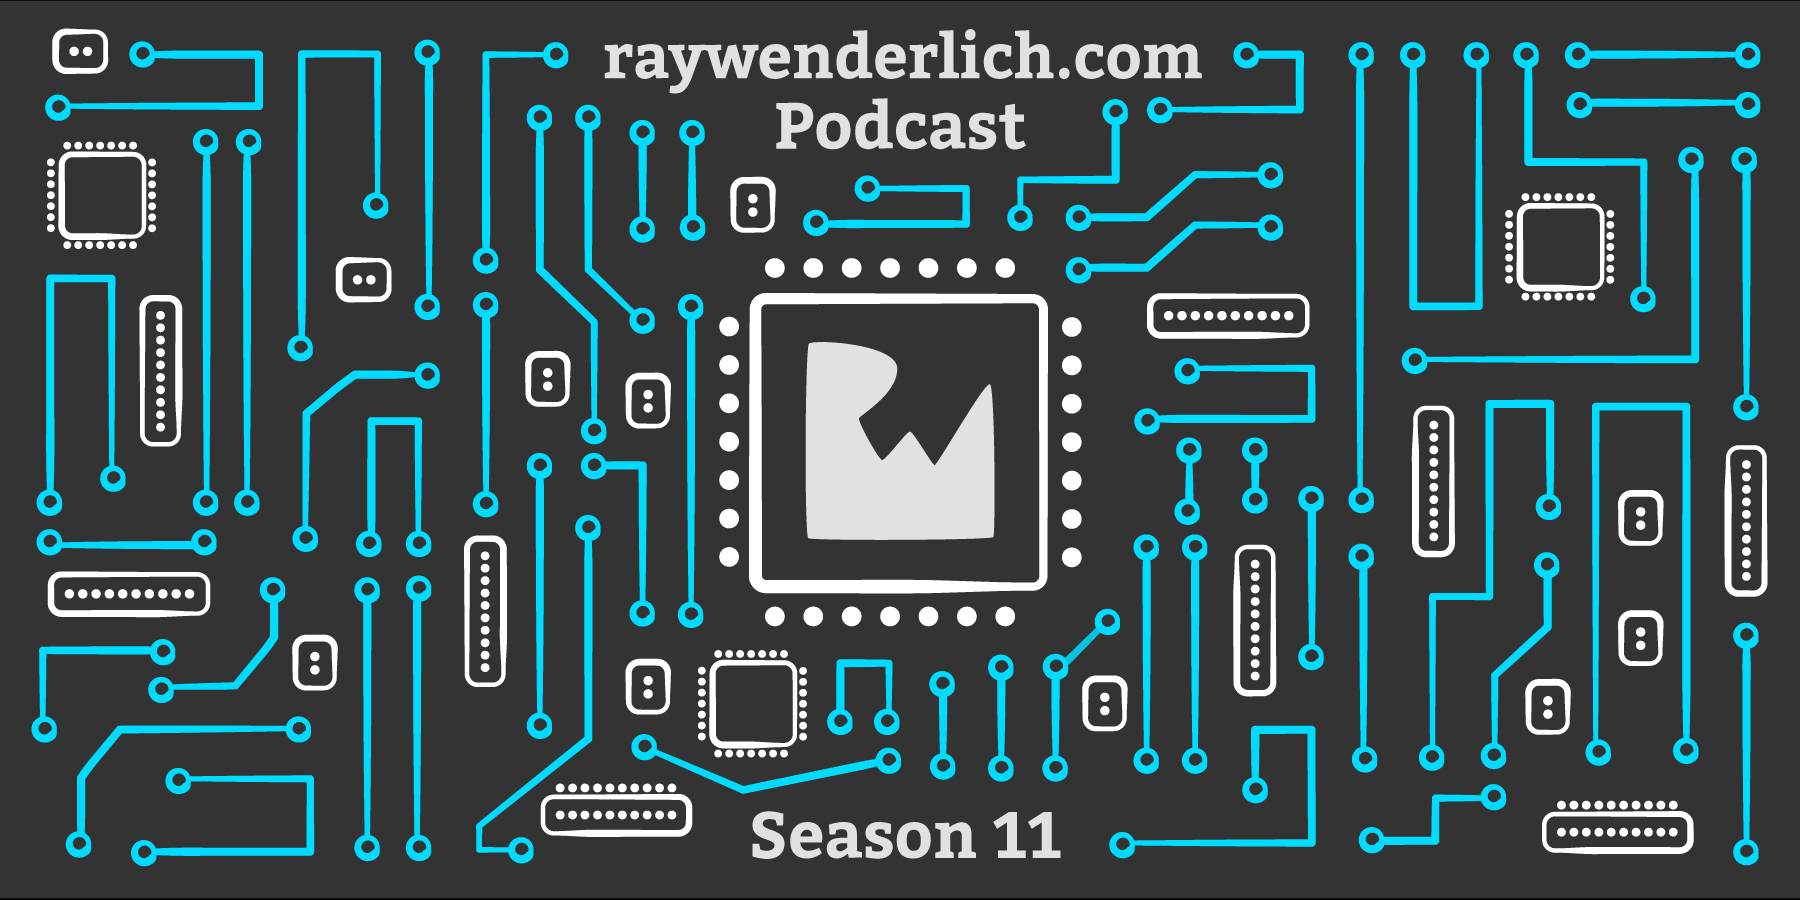 raywenderlich.com Podcast Season 11 is here! [FREE]